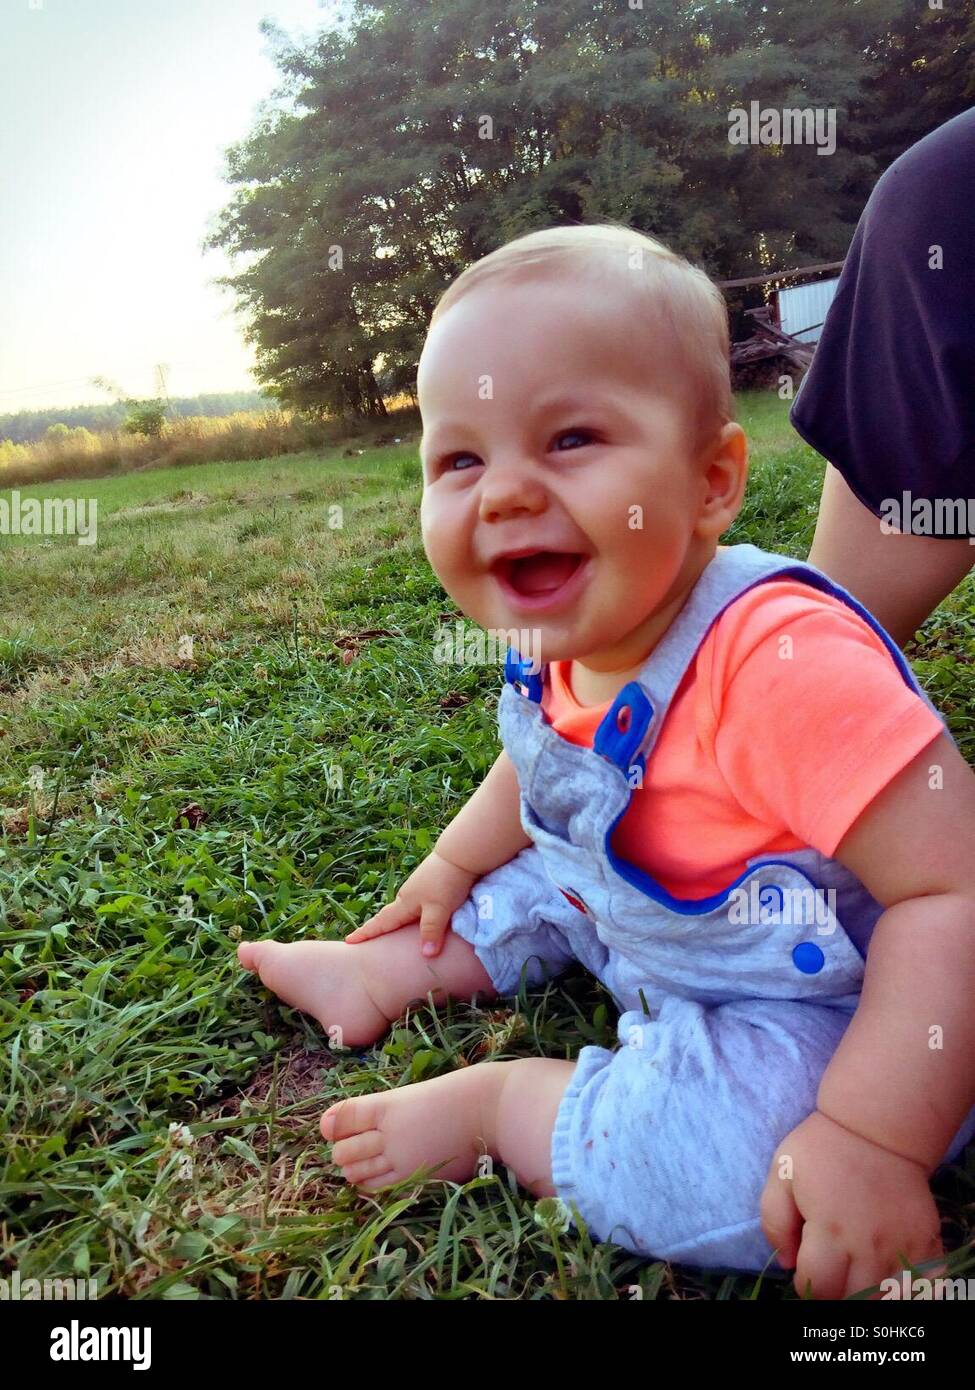 Smiling baby boy sitting on the grass - Stock Image